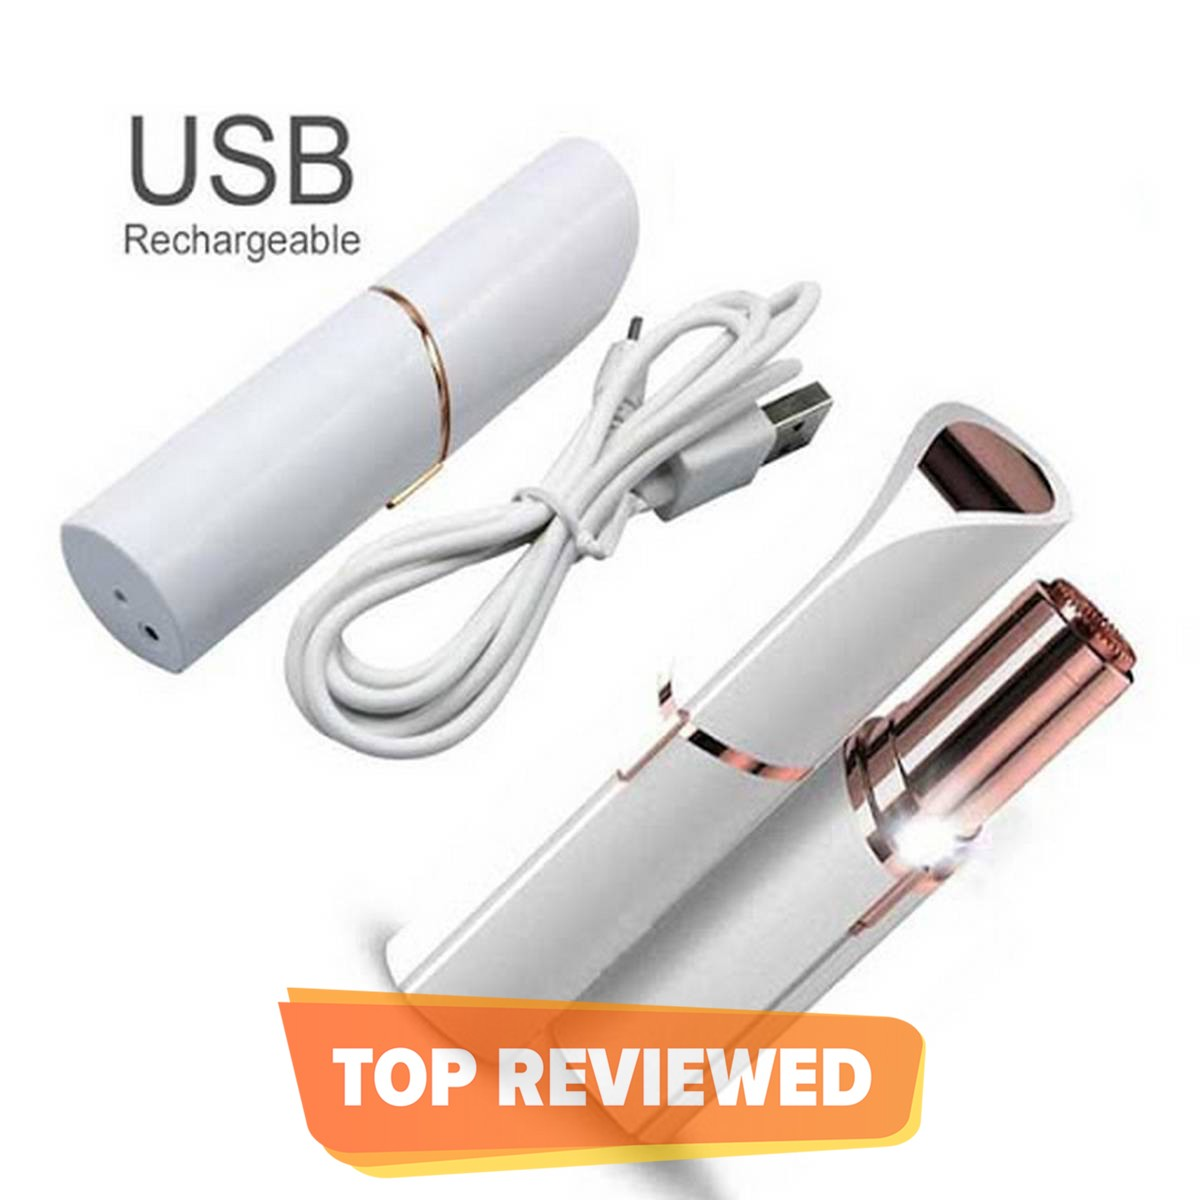 Orignal Flawless Laser Facial Hair Remover For Women Painless Hair Remover For Gentle And Smooth Skin For All Body Parts Ladies Shaver Machine With Heavy Duty battery Rechargeable  With USB Cable Imported